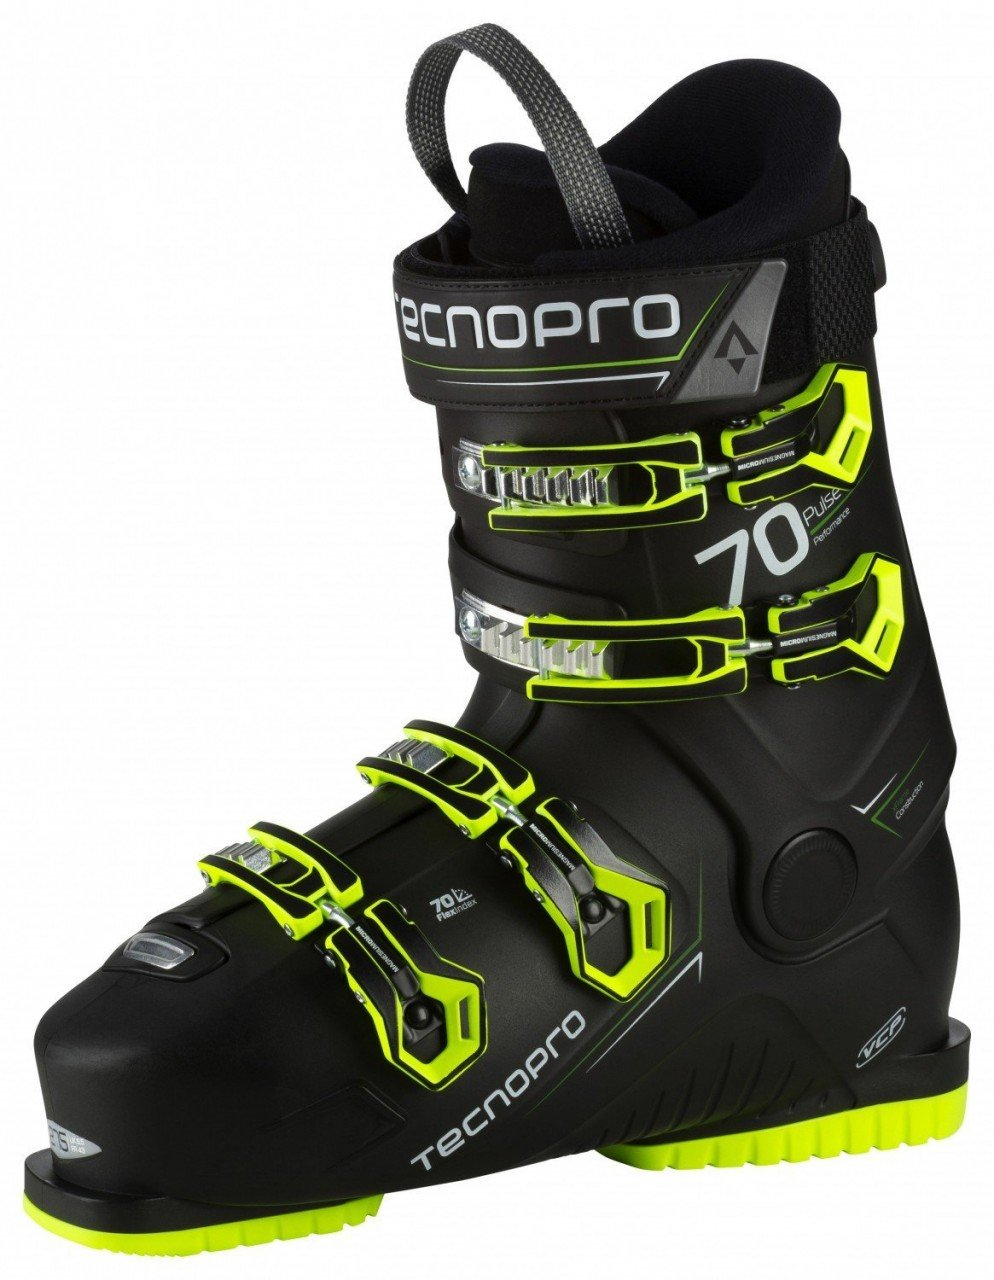 Sports Et De Loisirs Tecnopro Homme Pulse 70 Ski Chaussures 0xYwBwPqA